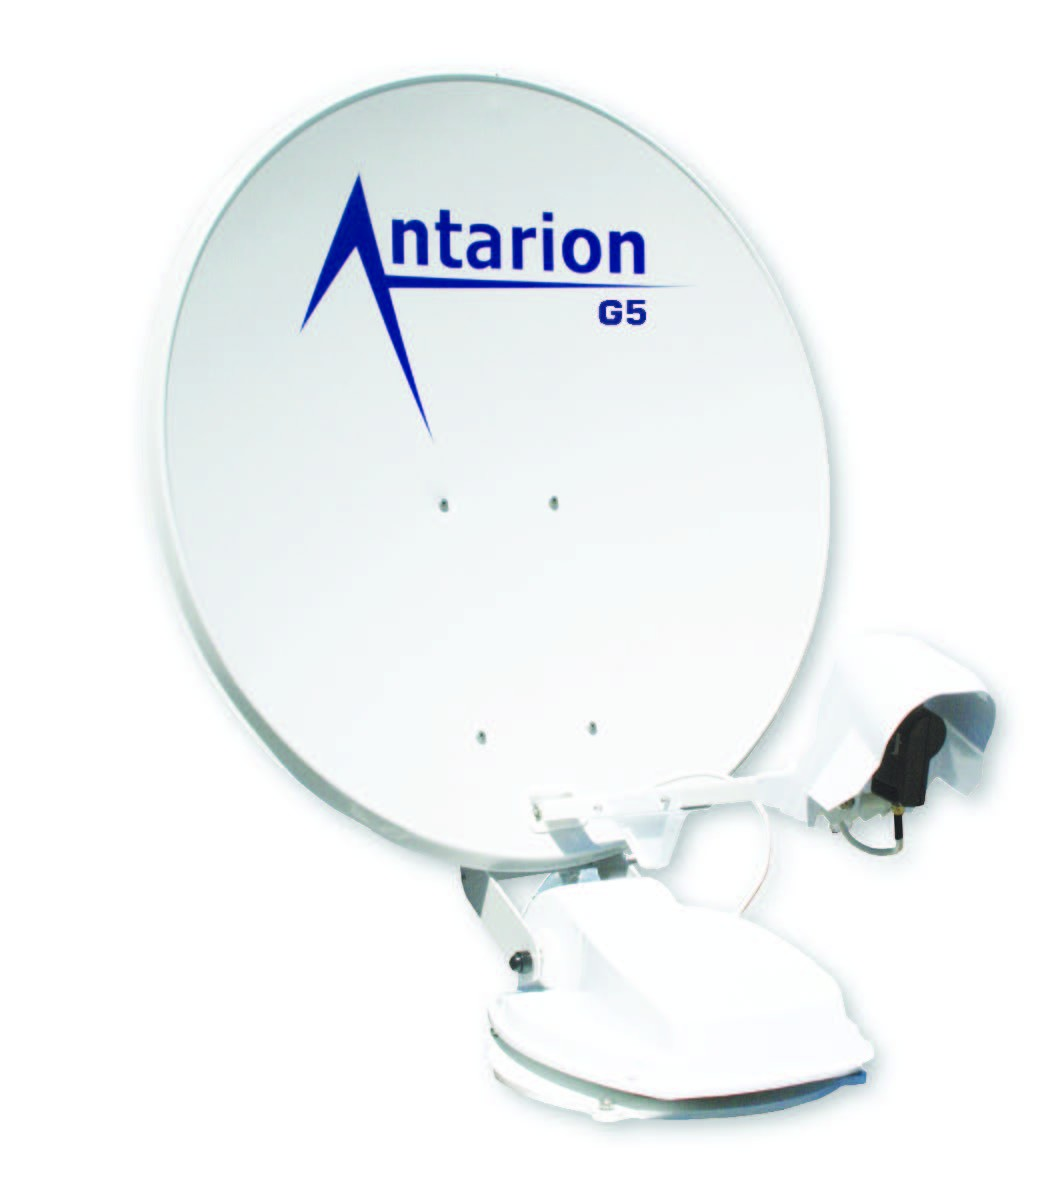 Antenne satellite automatique antarion 72 g5 for Antenne satellite interieur